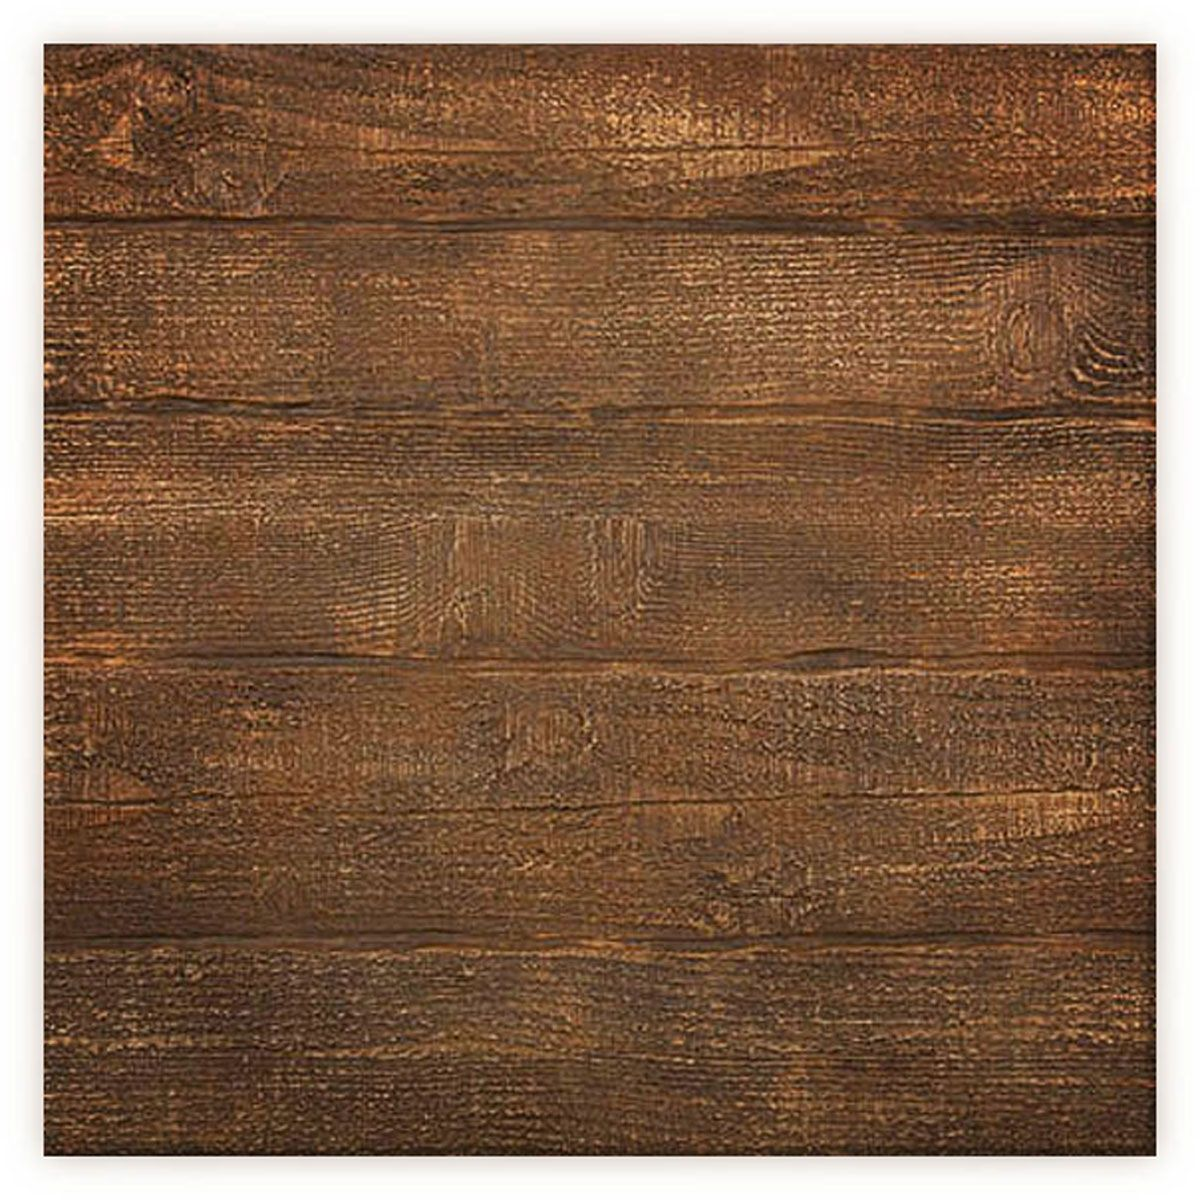 8 W X 10 H Rough Sawn Endurathane Faux Wood Siding Panel Sample Weathered Red Wood Panel Siding Wood Pallet Wall Faux Wood